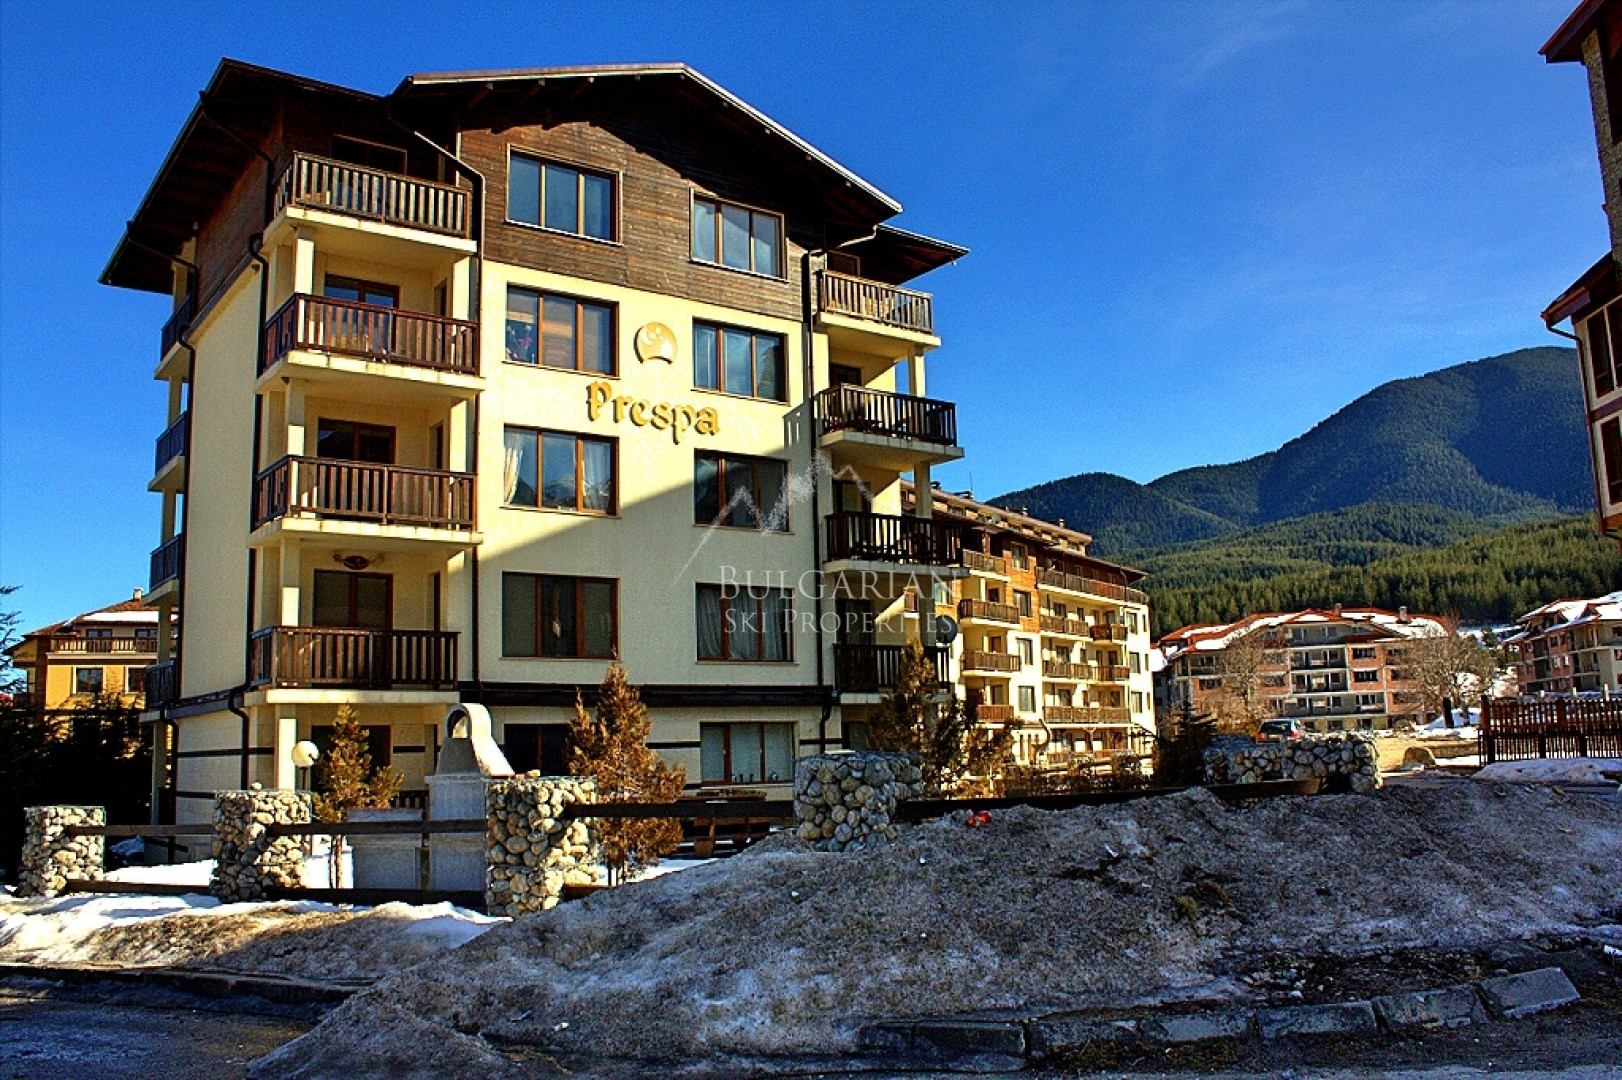 Bansko: Panoramic two-bedroom apartment  for sale in Prespa